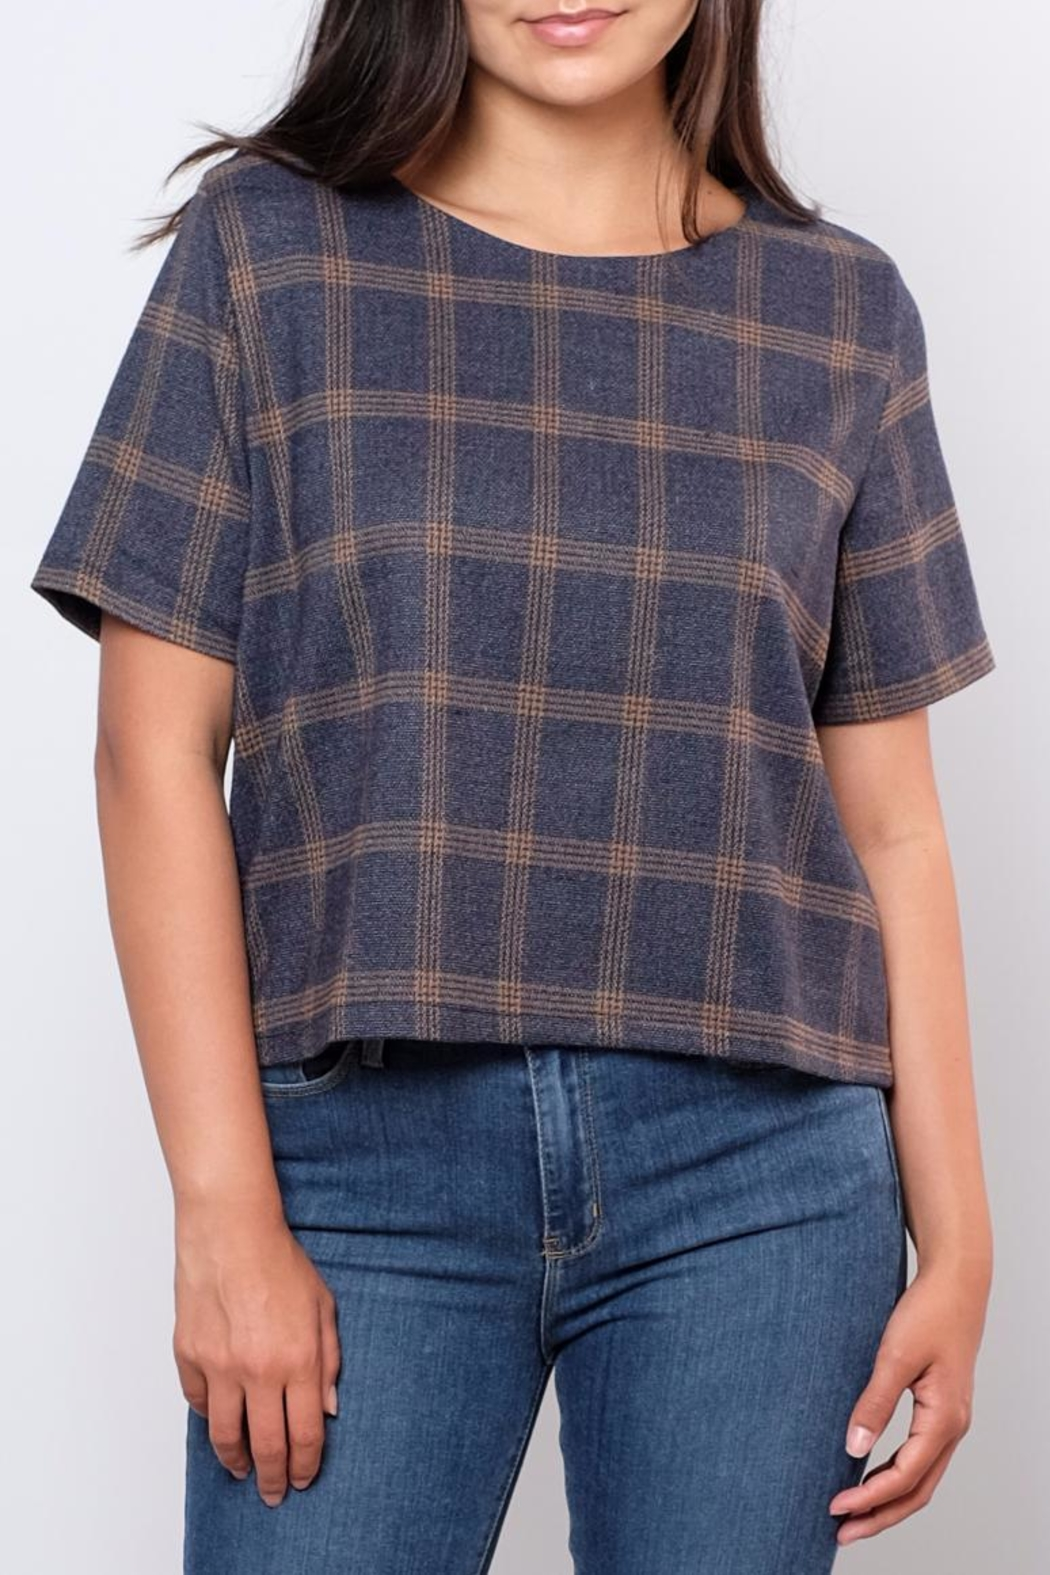 Everly Plaid Woven Top - Main Image